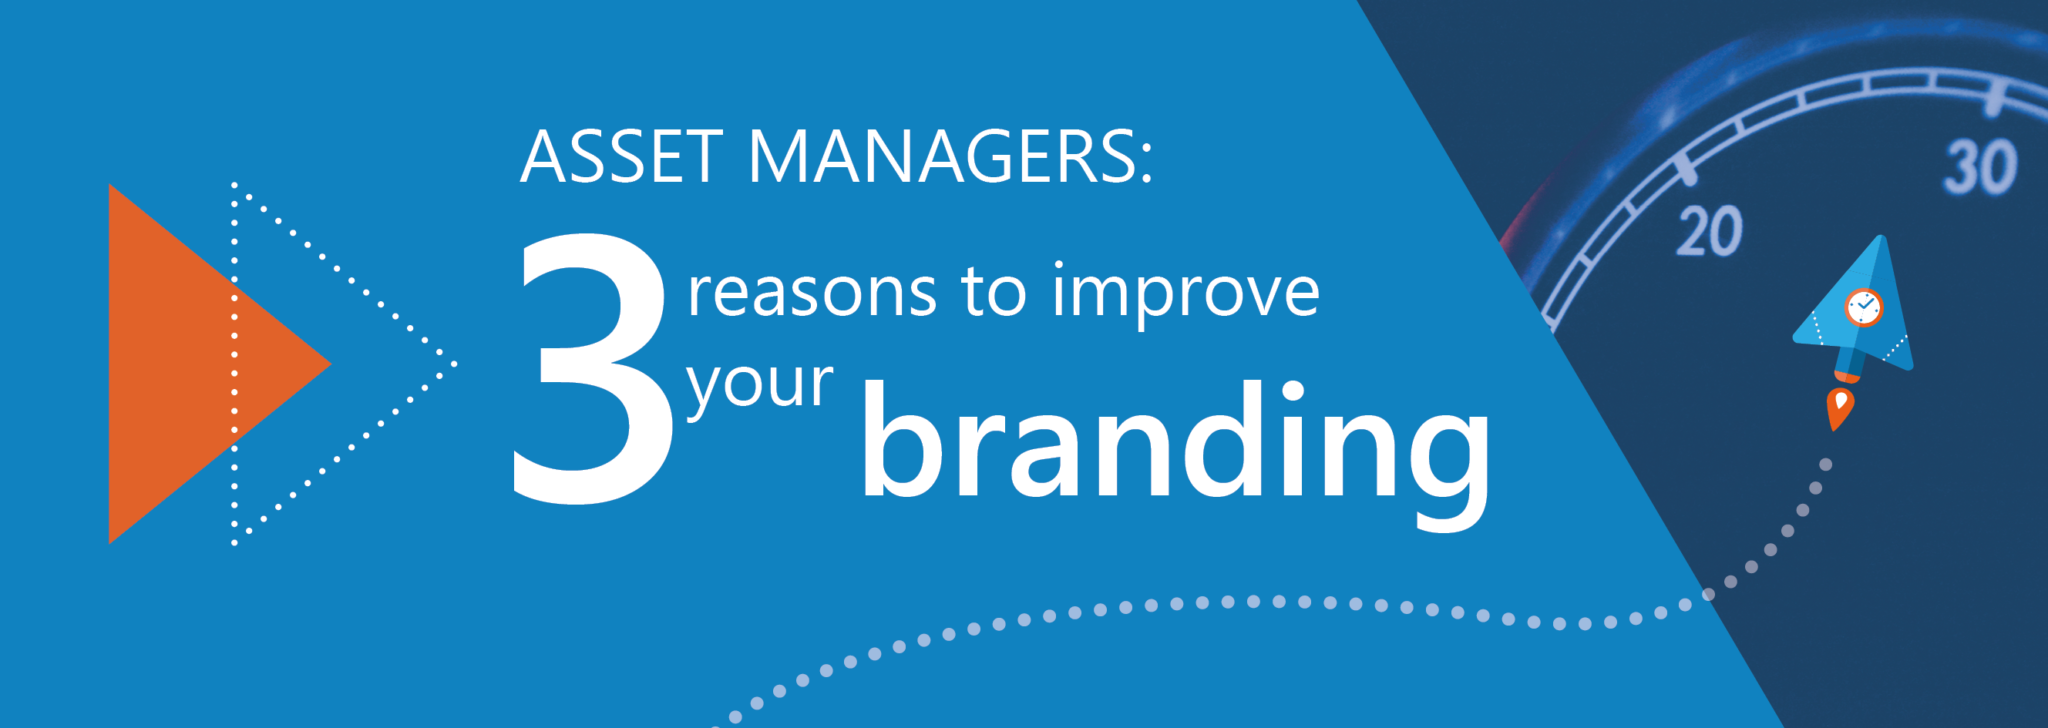 Tips why Asset Management firms should improve branding